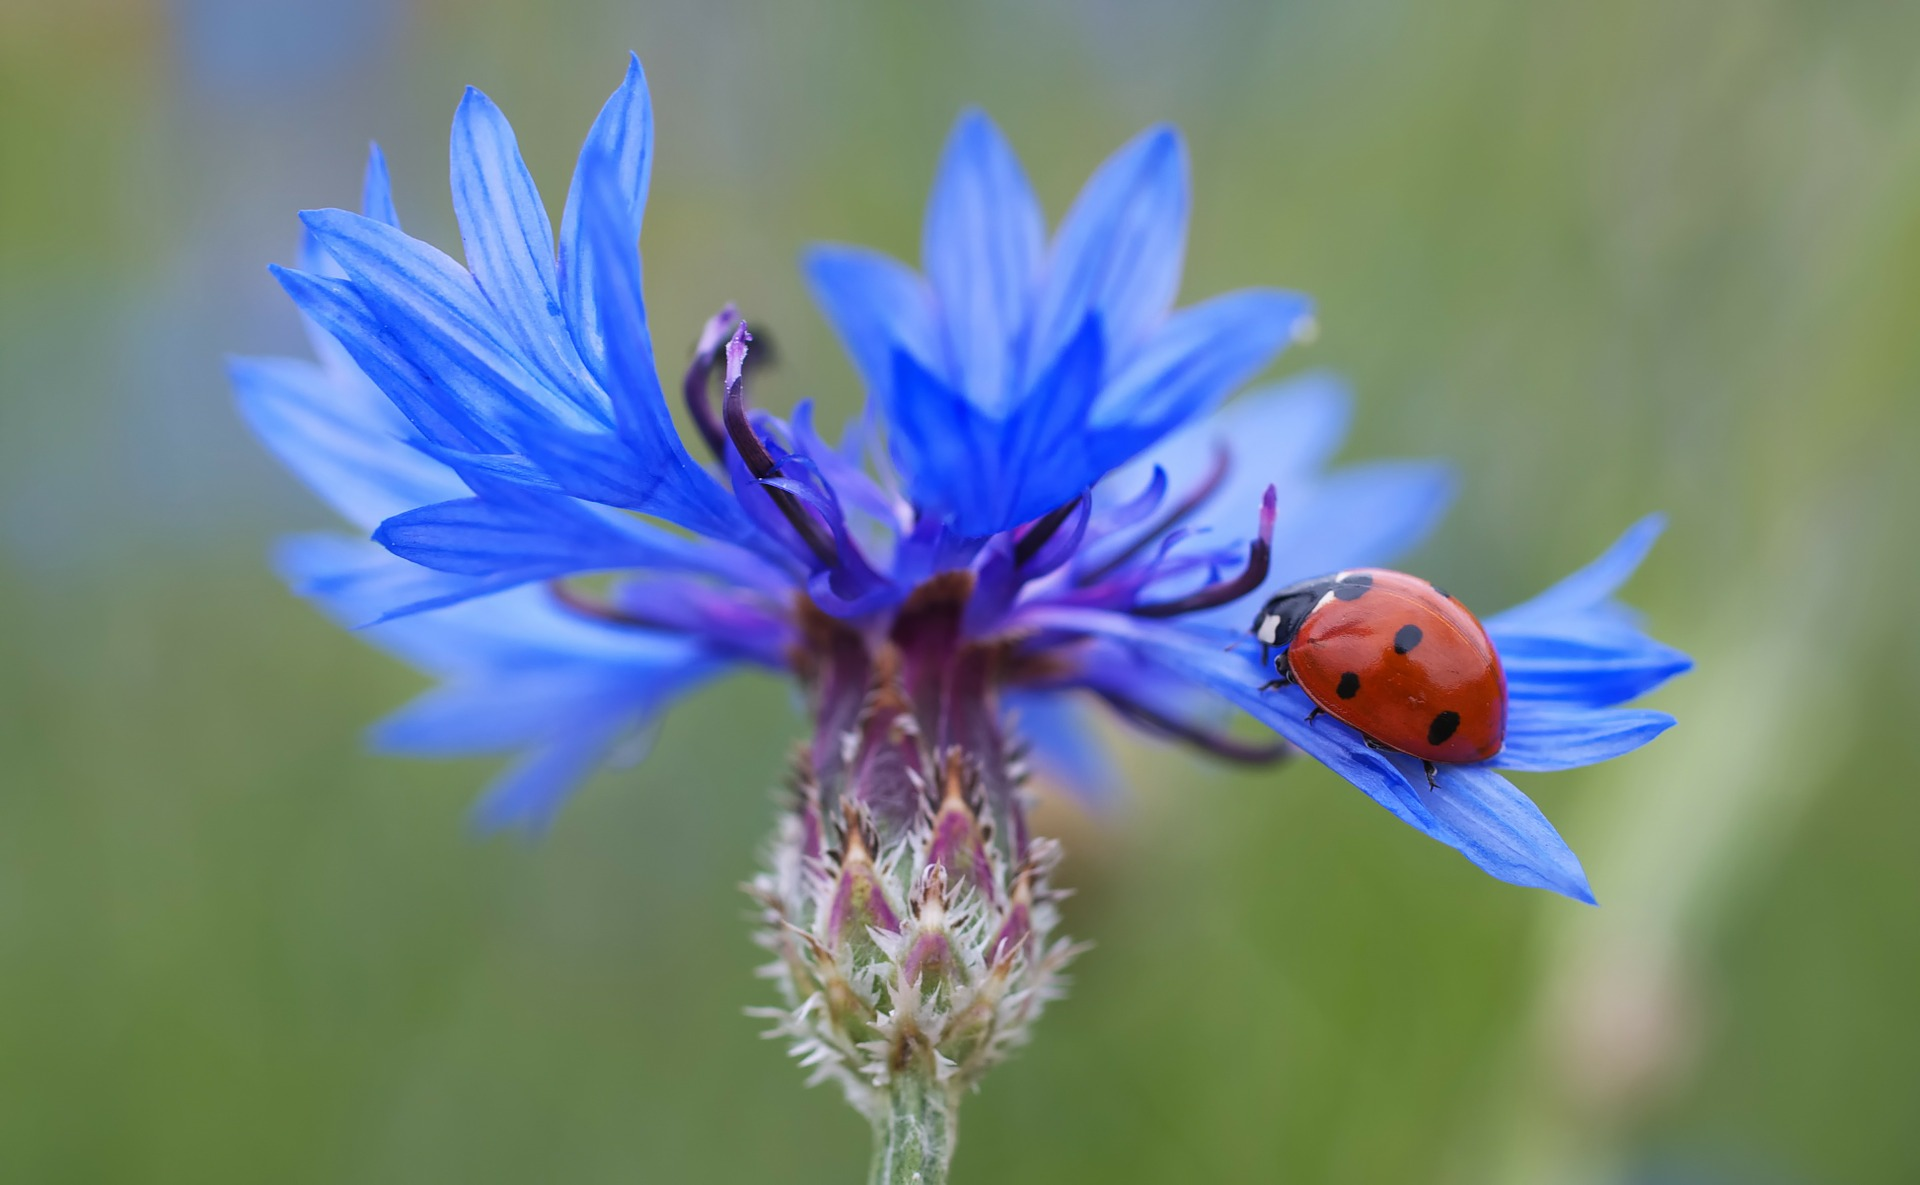 Blue flower with lady bug